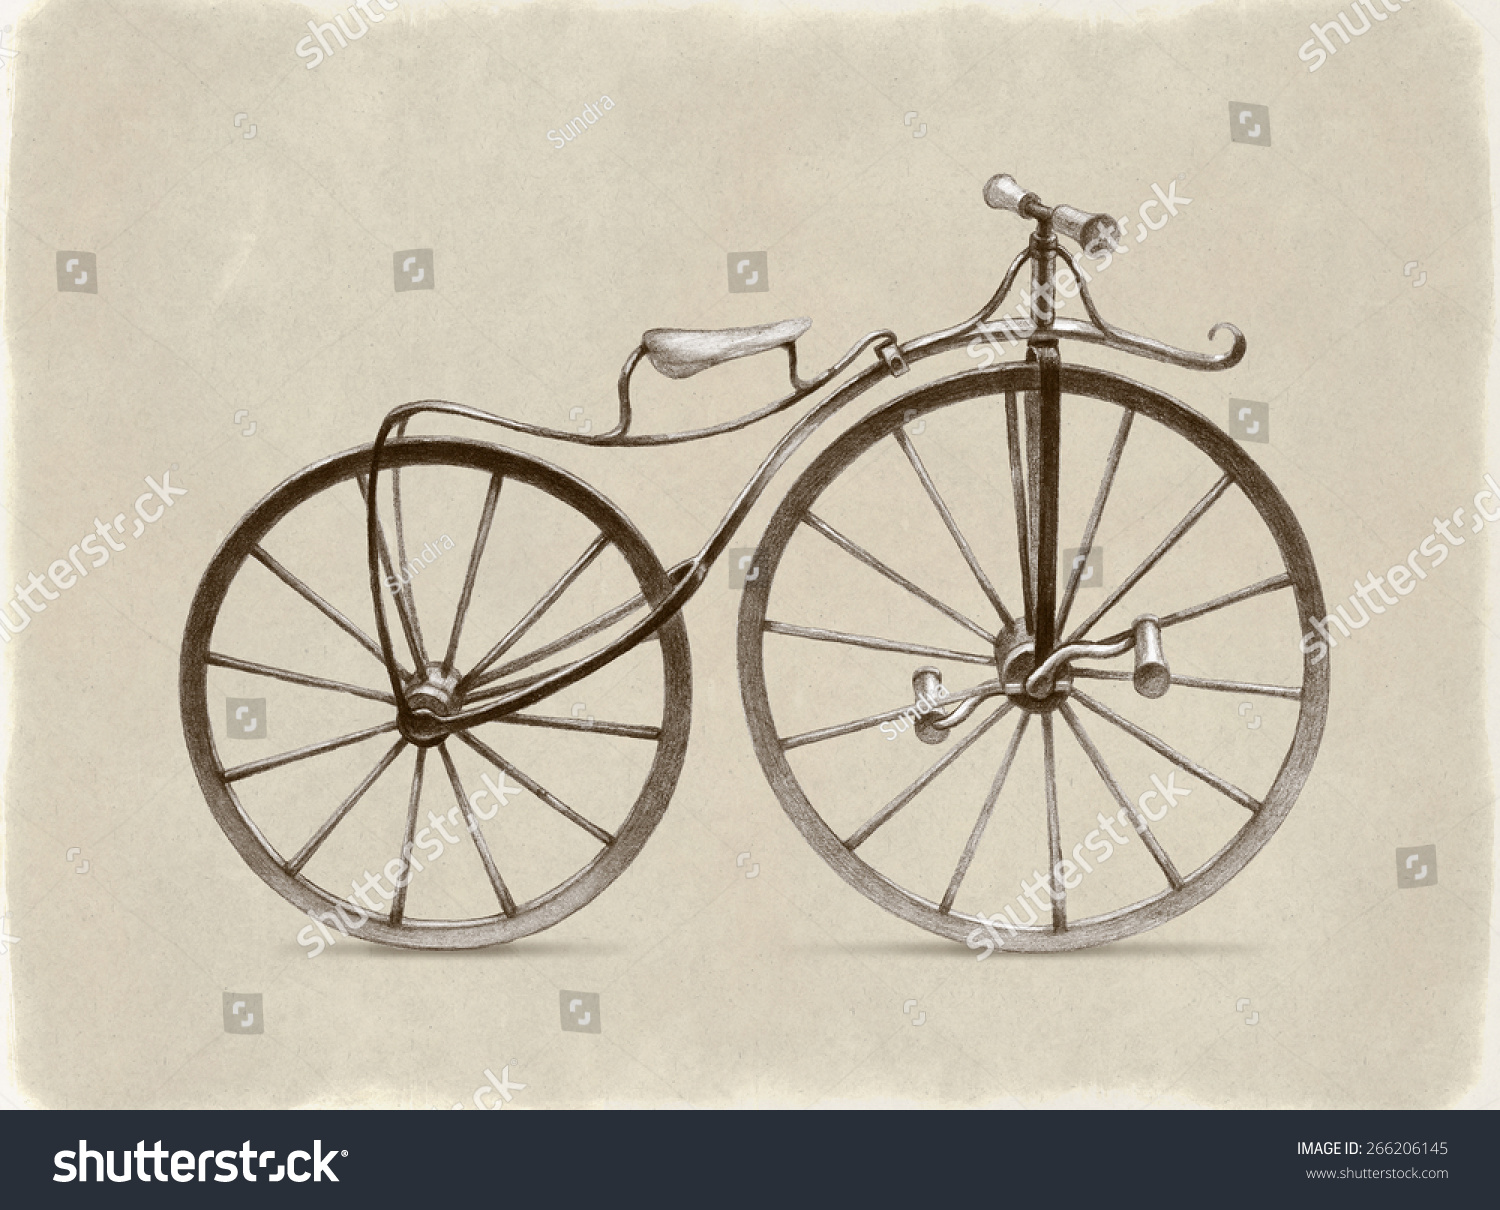 Pencil drawing retro bicycle stock illustration 266206145